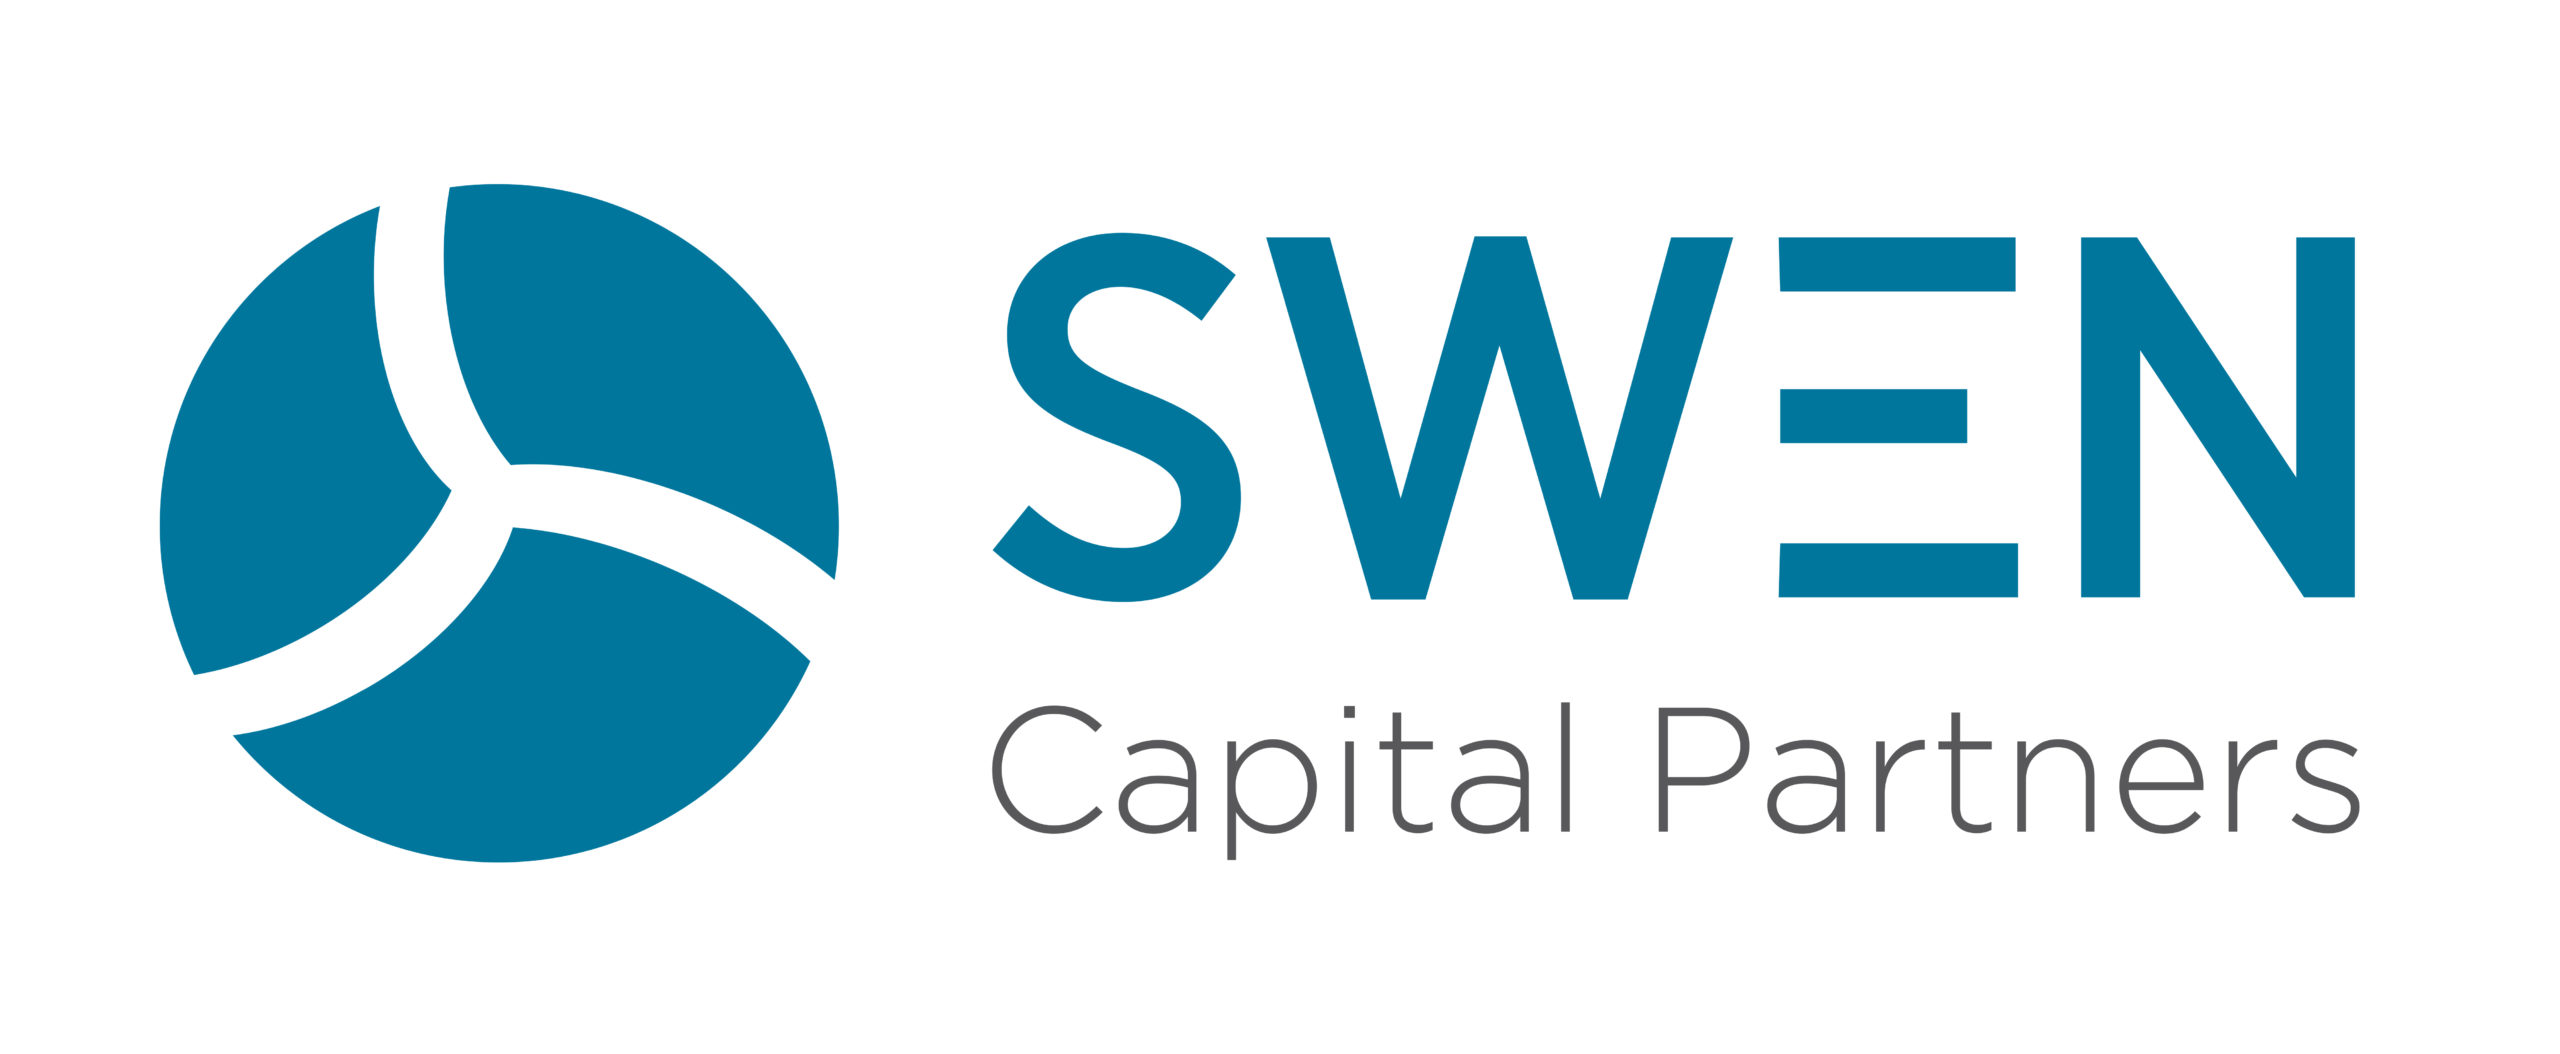 SWEN Capital Partners